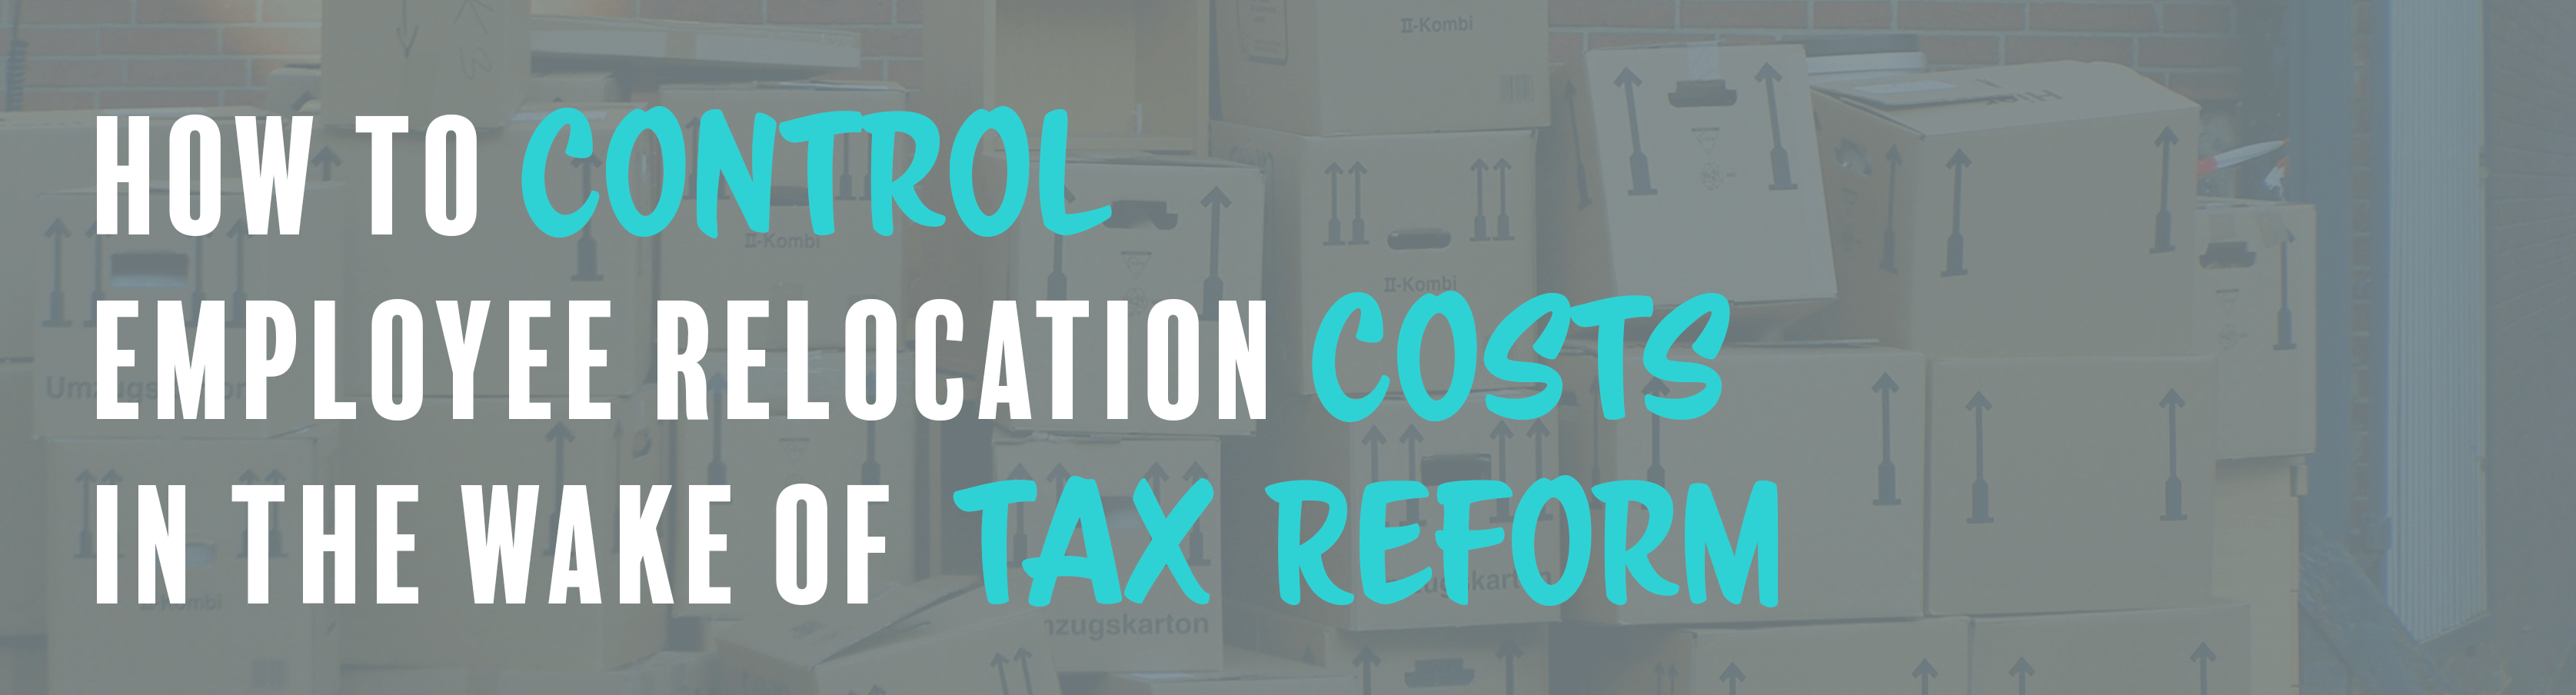 How-to-Control-Costs-in-Wake-of-Tax-Reform-Webinar-V2.png